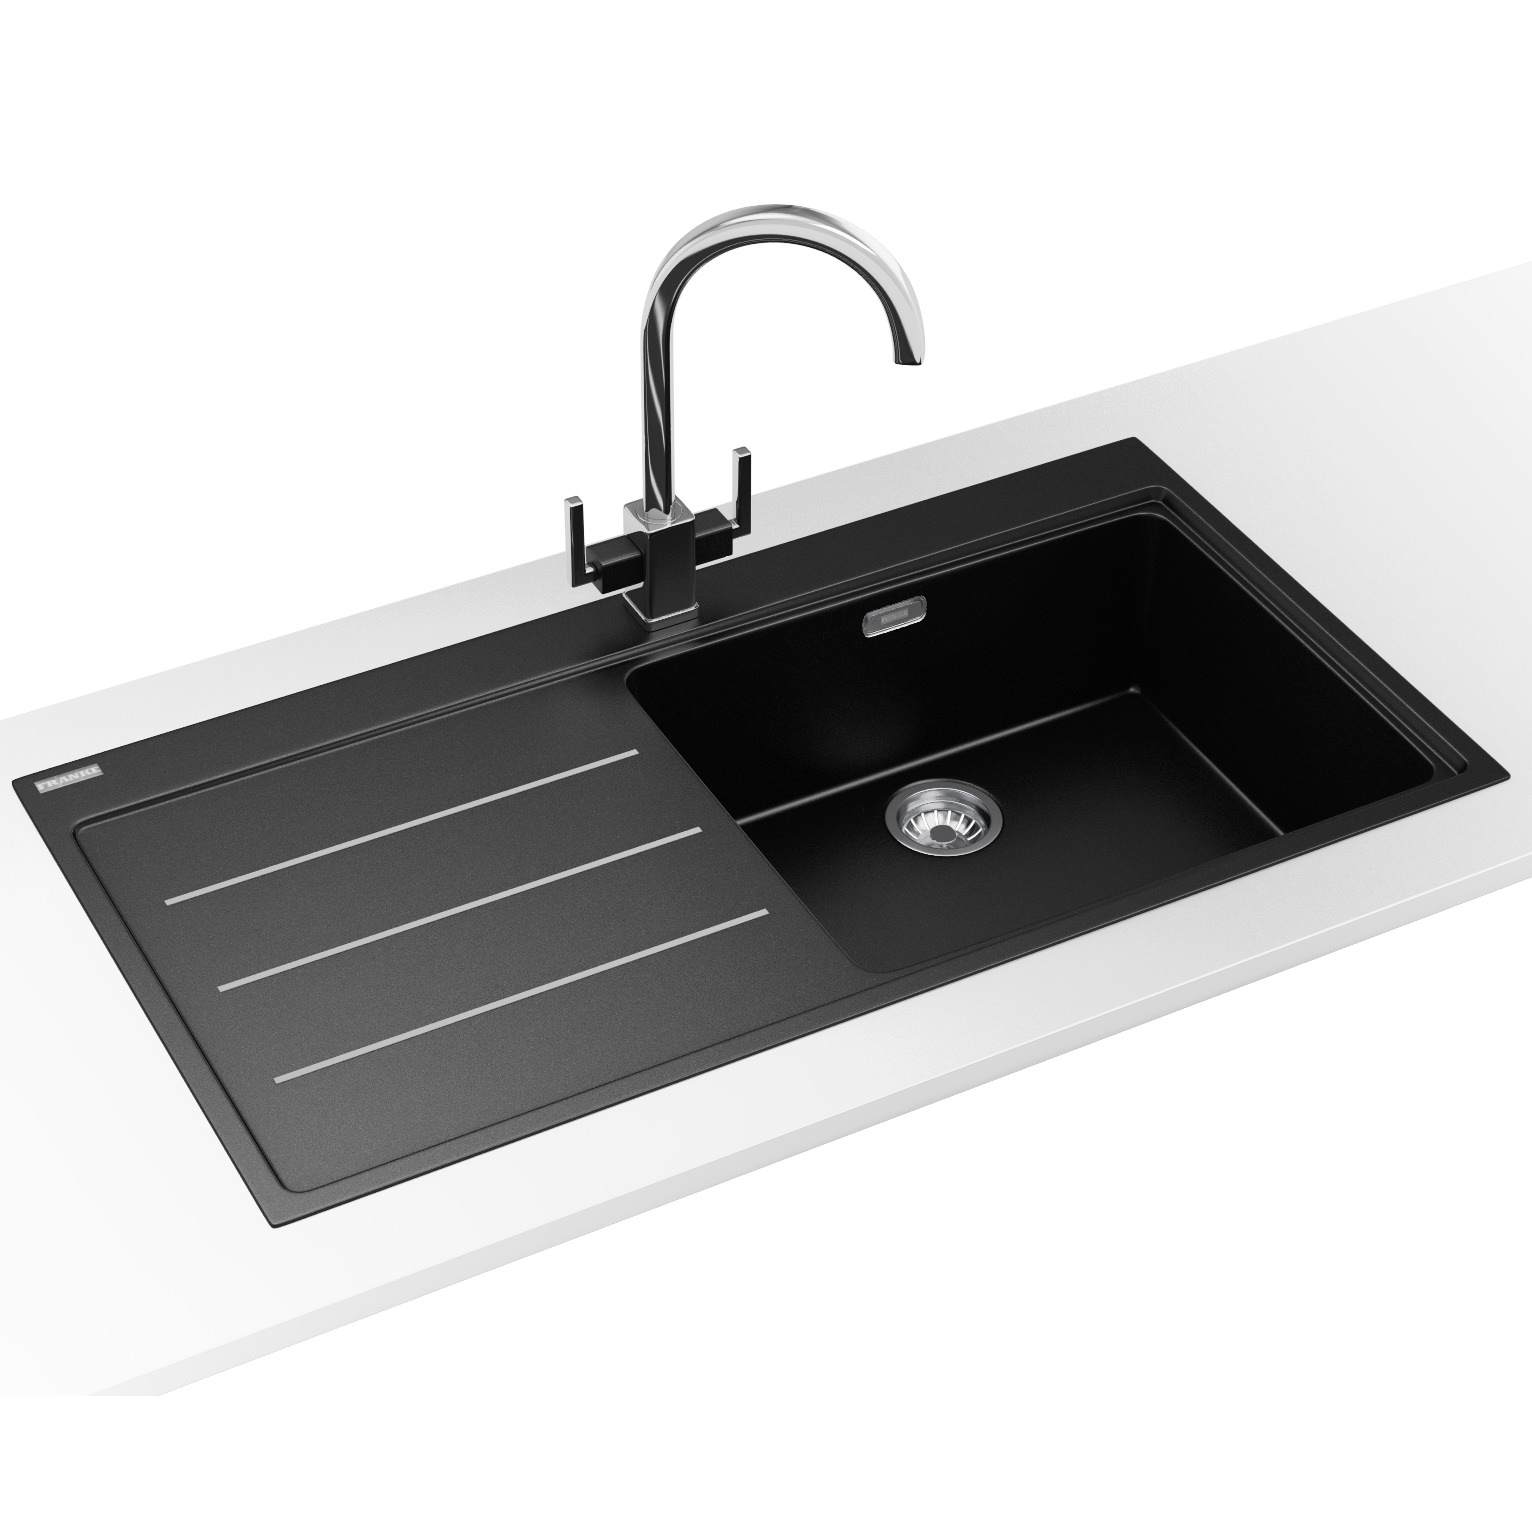 Franke mythos fusion dp mtf 611 fragranite onyx sink and tap - Designer sinks ...